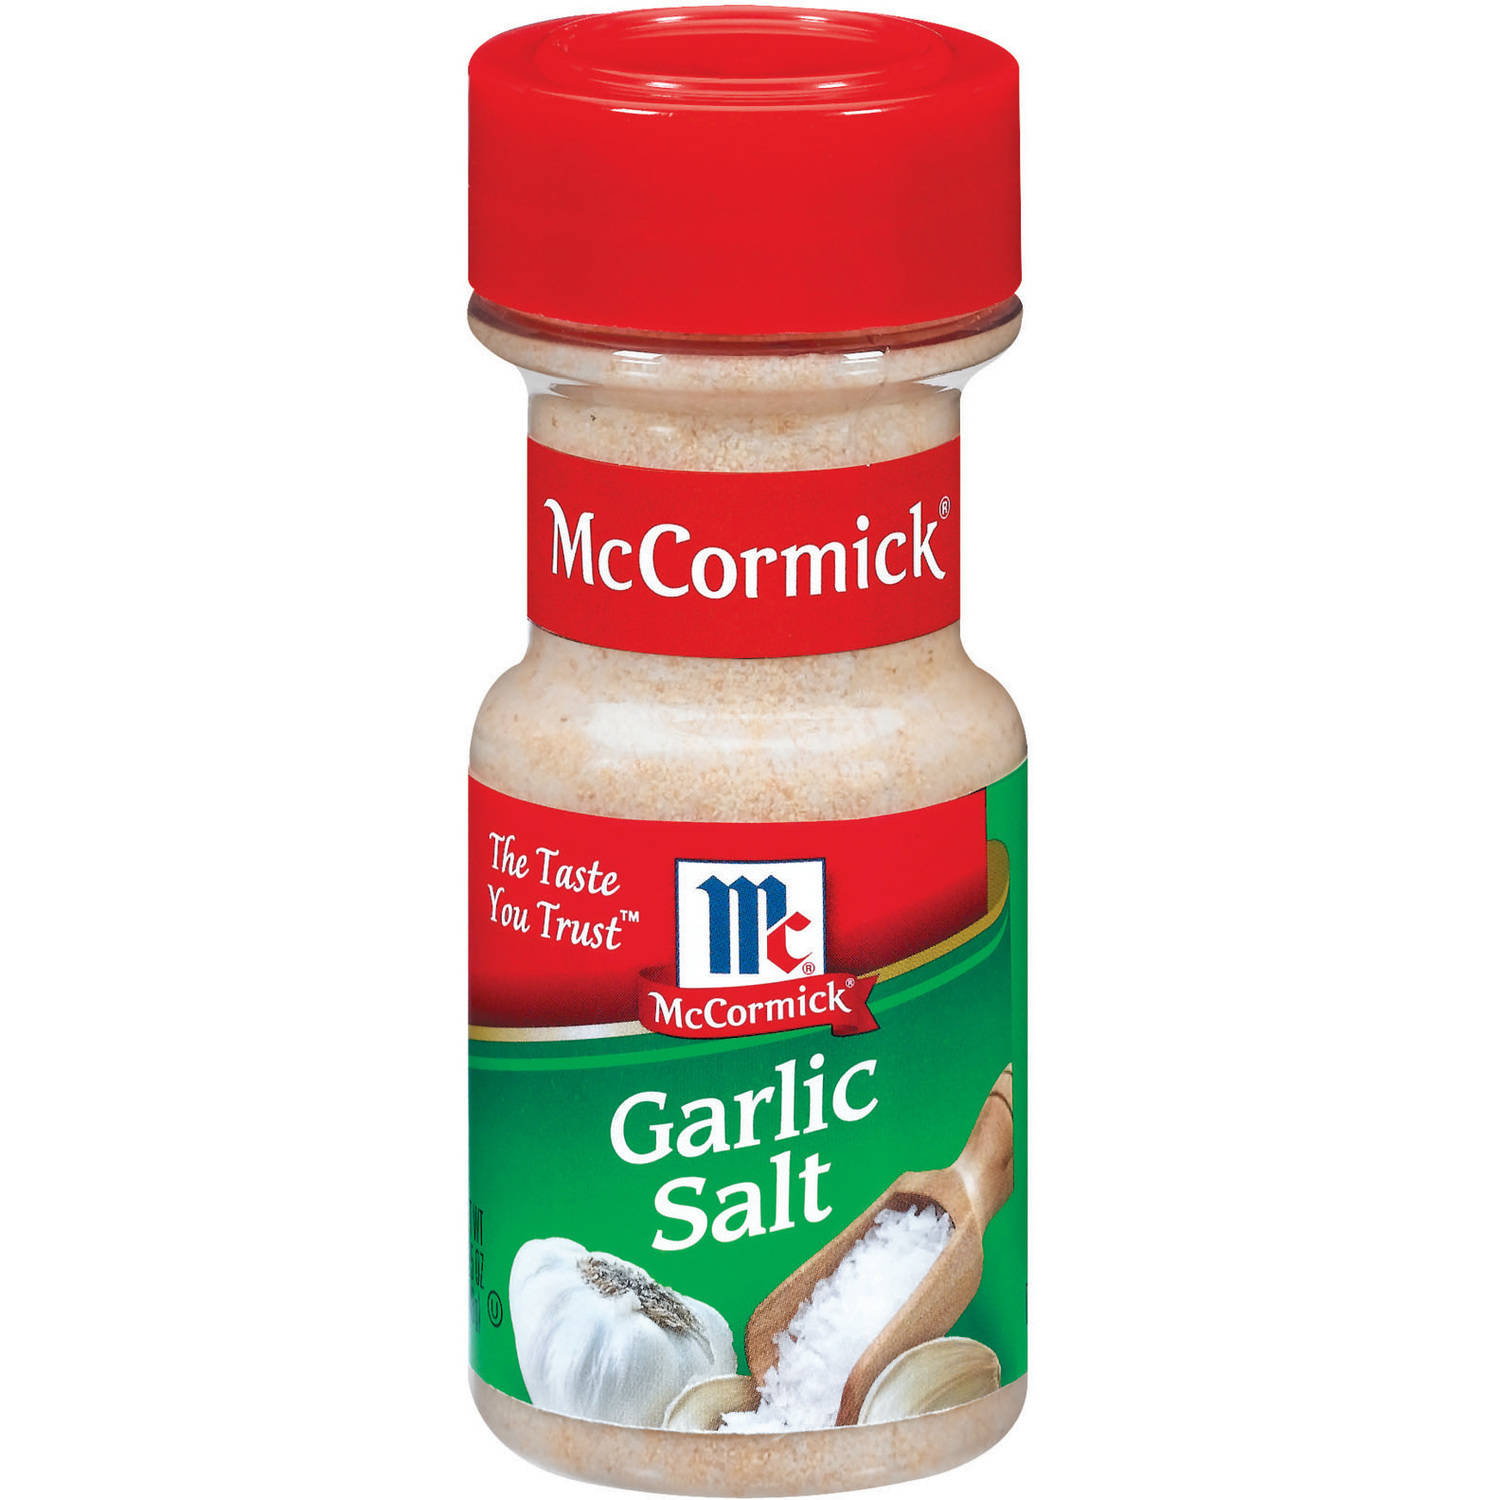 McCormick Garlic Salt, 5.25 oz